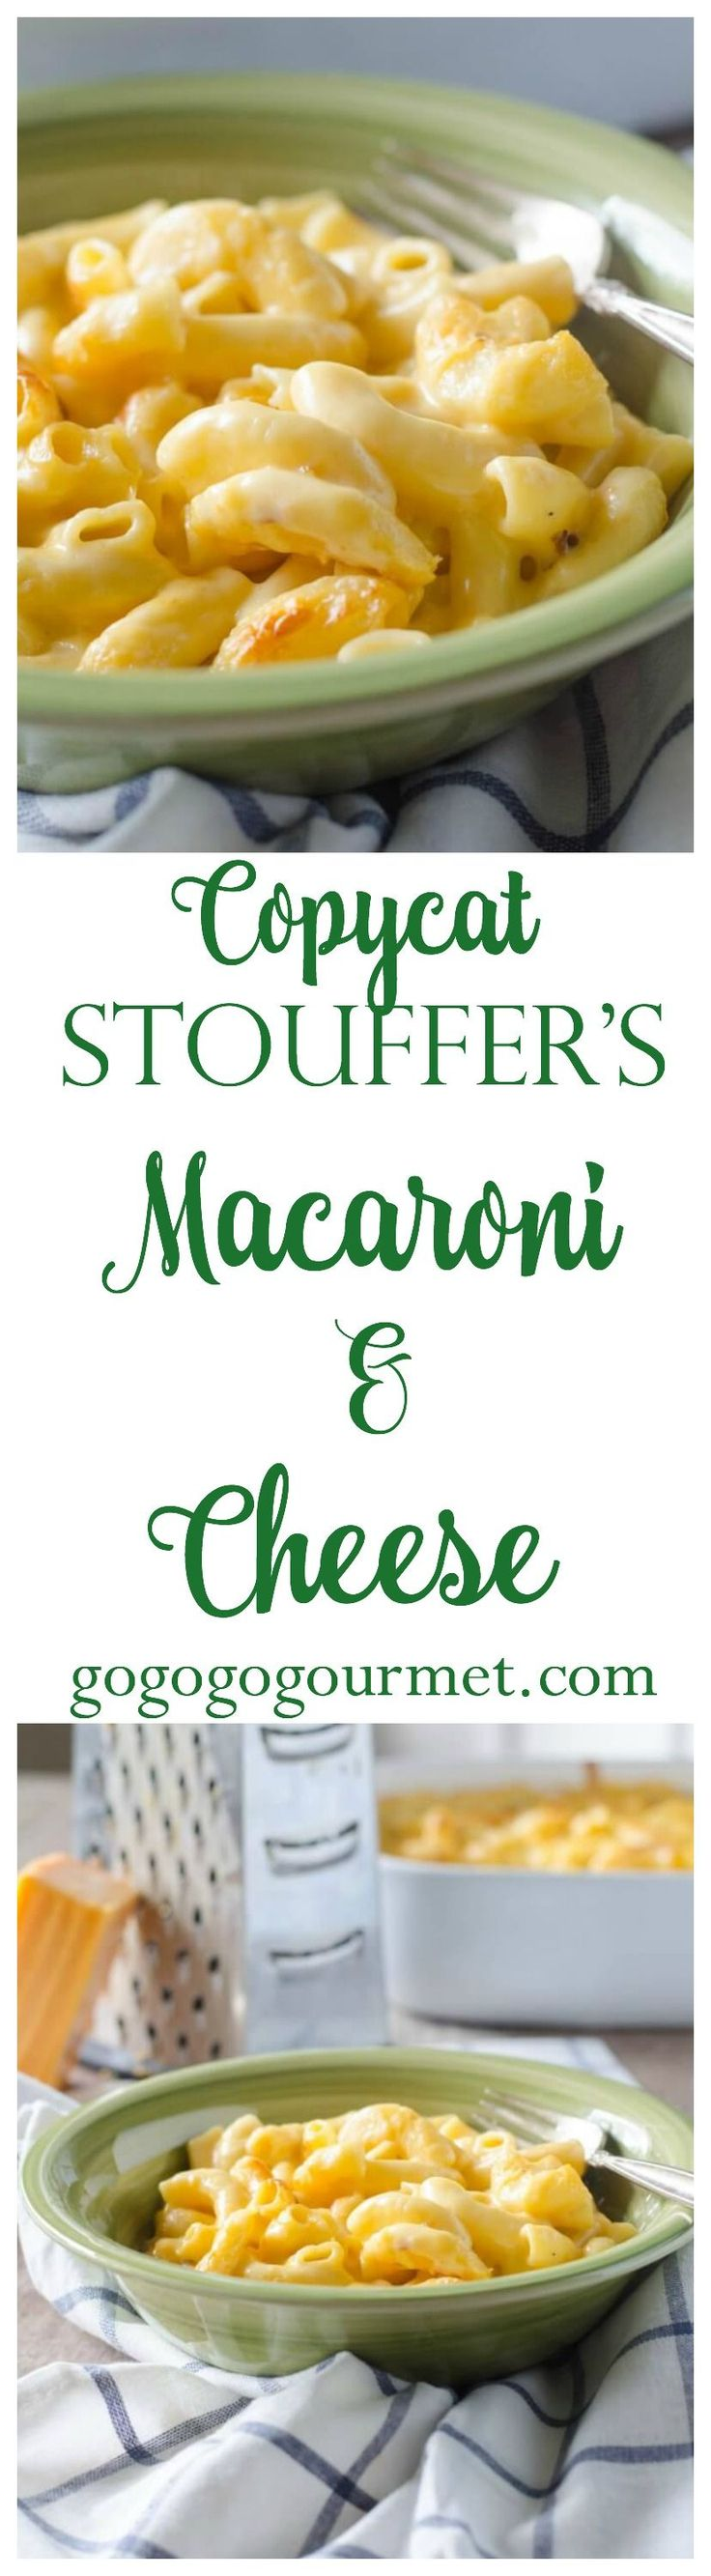 This five ingredient mac and cheese is so creamy and perfect, you'll never buy it from the freezer again! Copycat Stouffer's Macaroni and Cheese | Go Go Go Gourmet @gogogogourmet